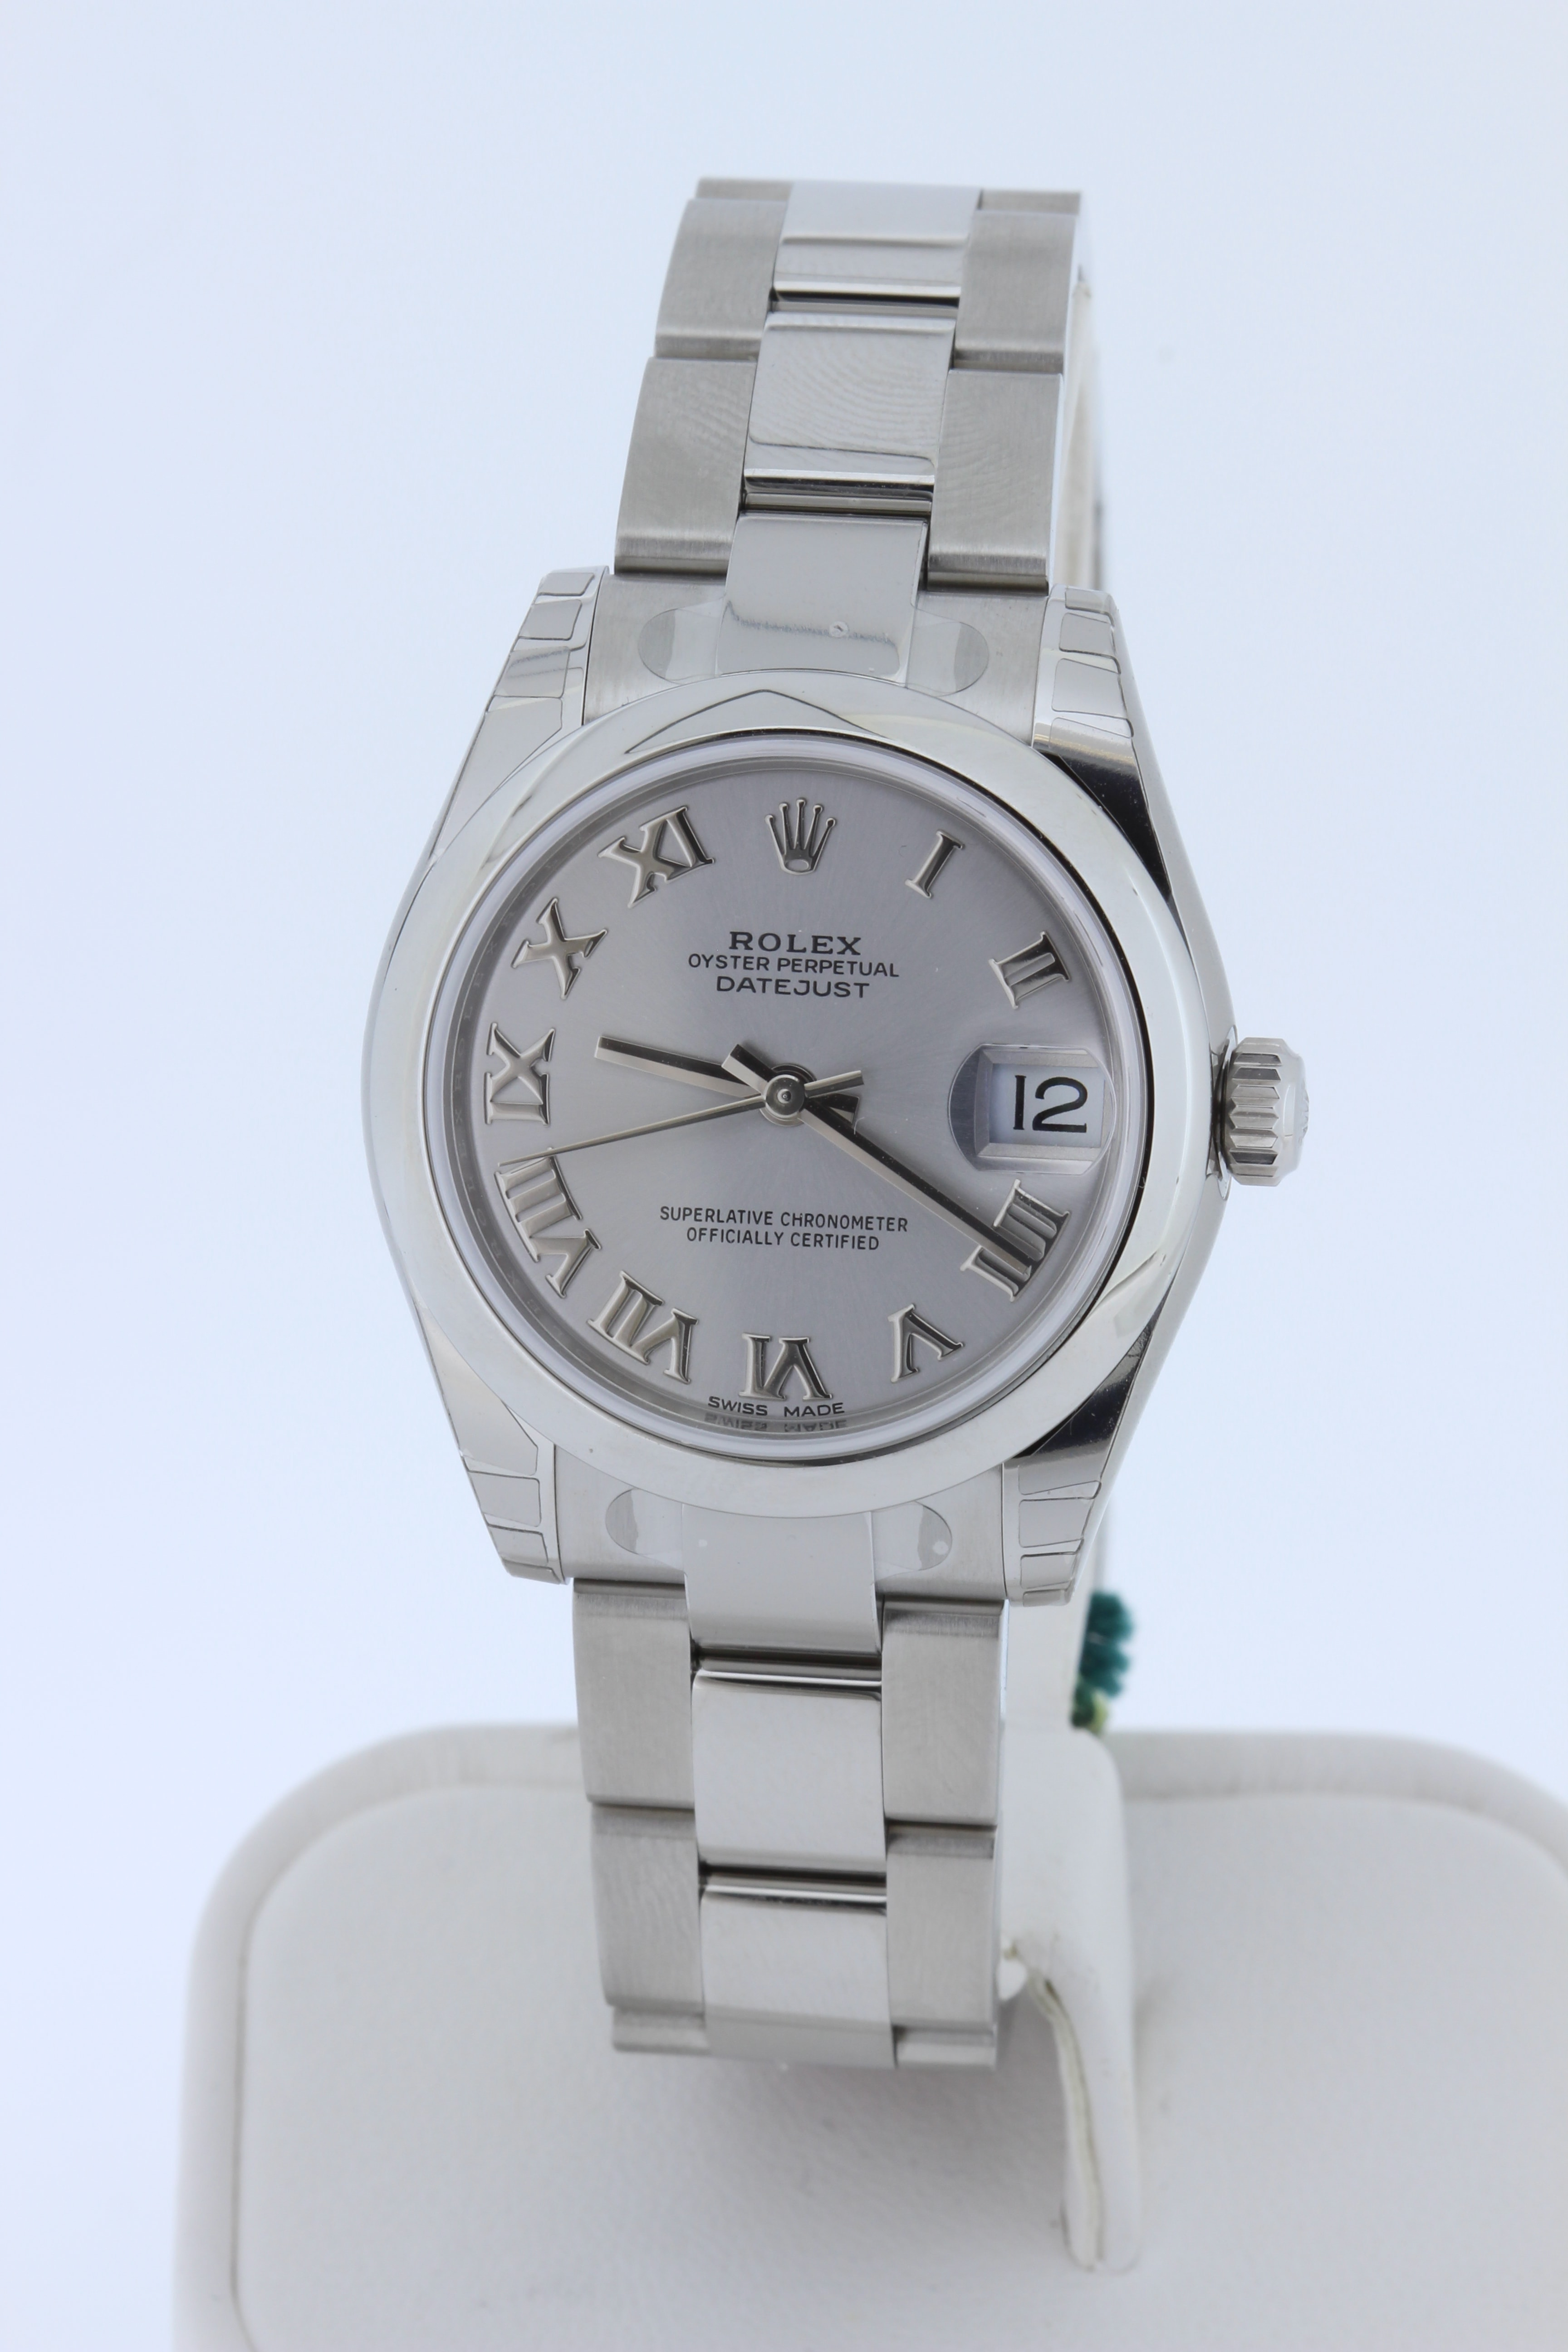 Mid-size Datejust, Box & Papers, 2019, Plastic still on